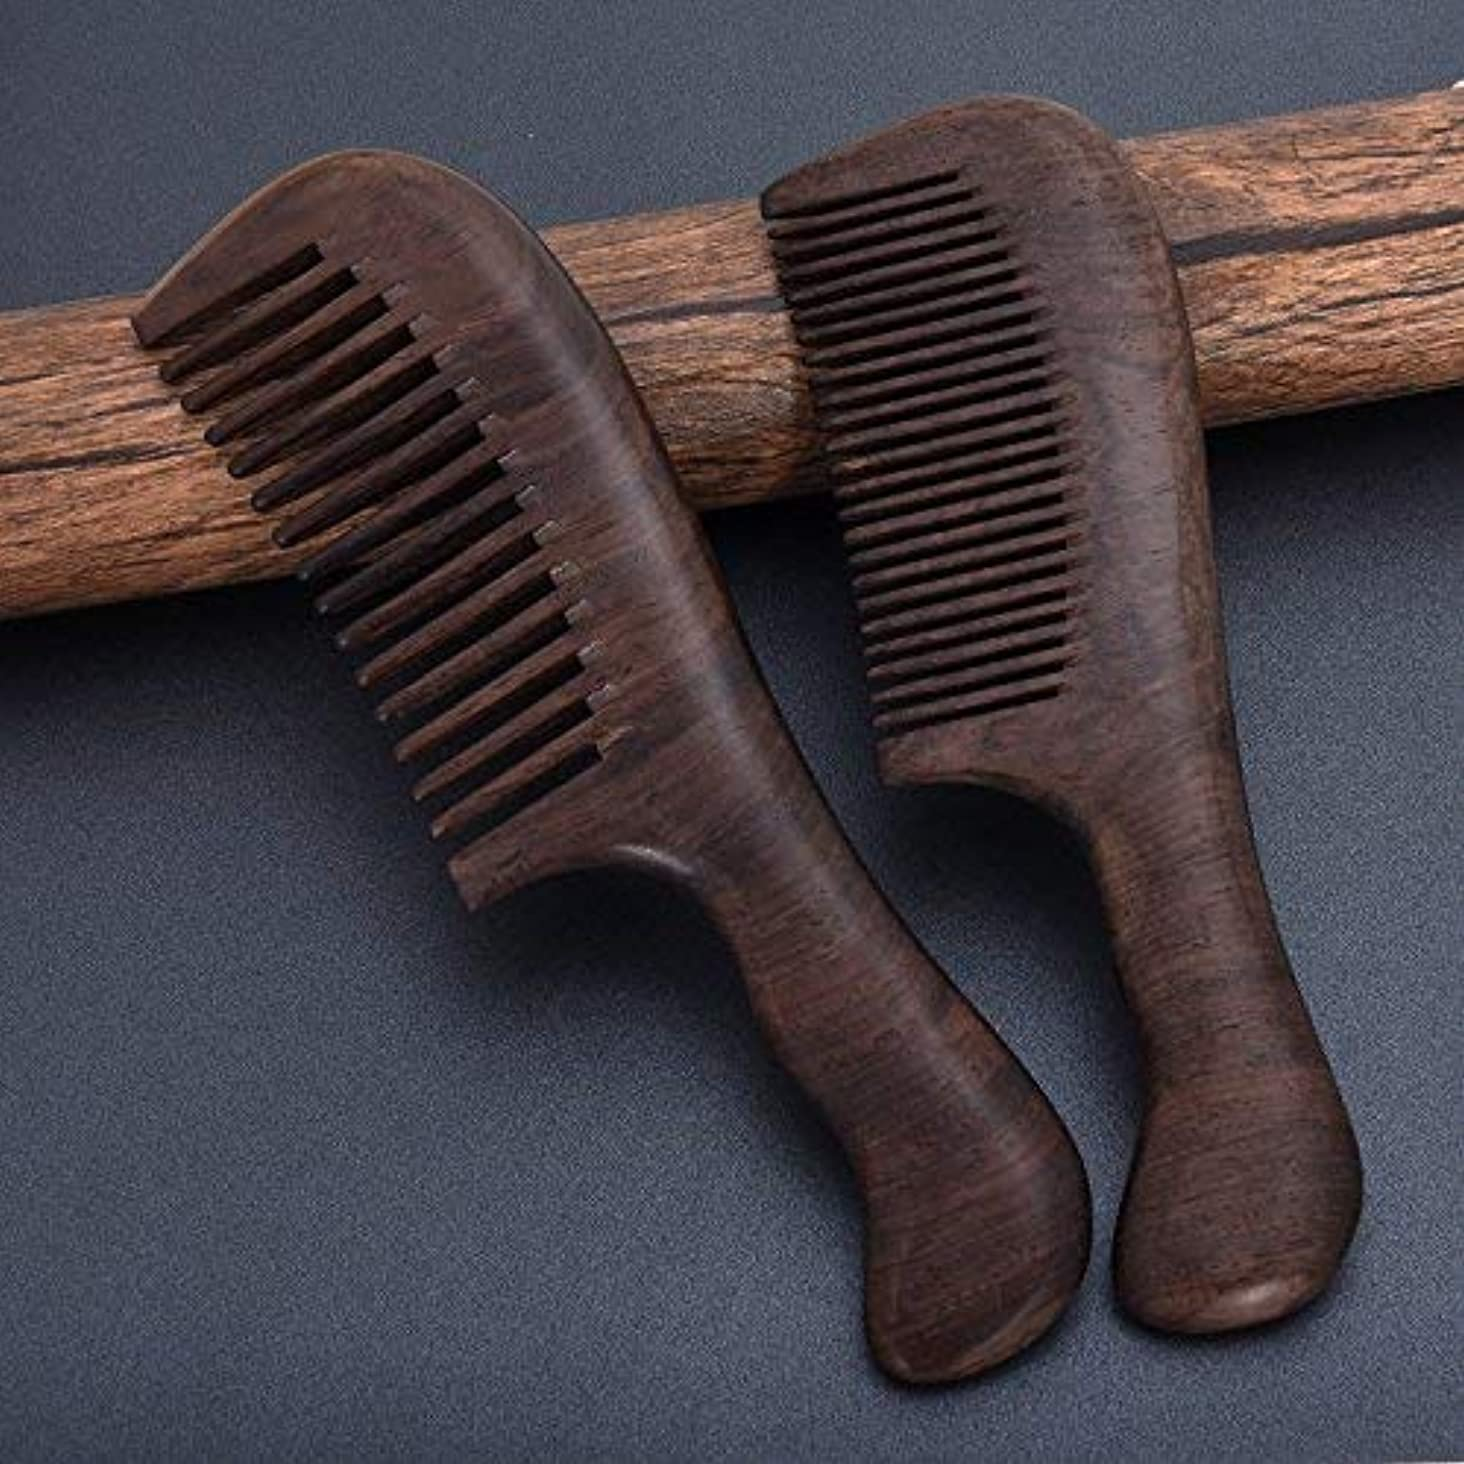 世辞おじさんコンクリートBlack Sandalwood Hair Comb, Pack of 2 Anti-static 8 inches Wooden Comb Set with Natural Aroma, A Standard Comb...